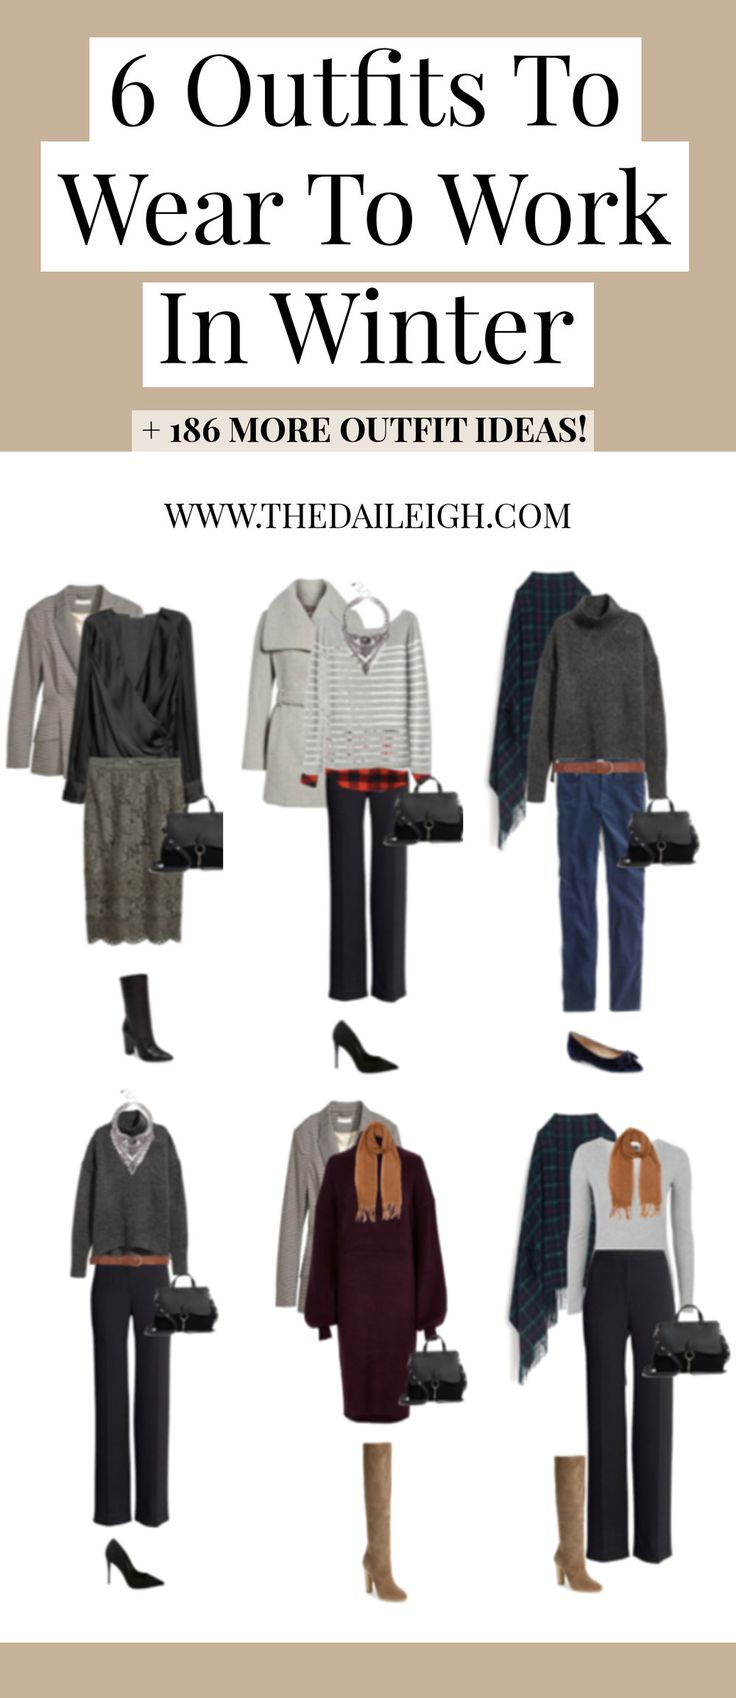 Winter Outfits For Work | Winter Outfits | Work Outfit Ideas | How To Dress | Fashion Tips for Women